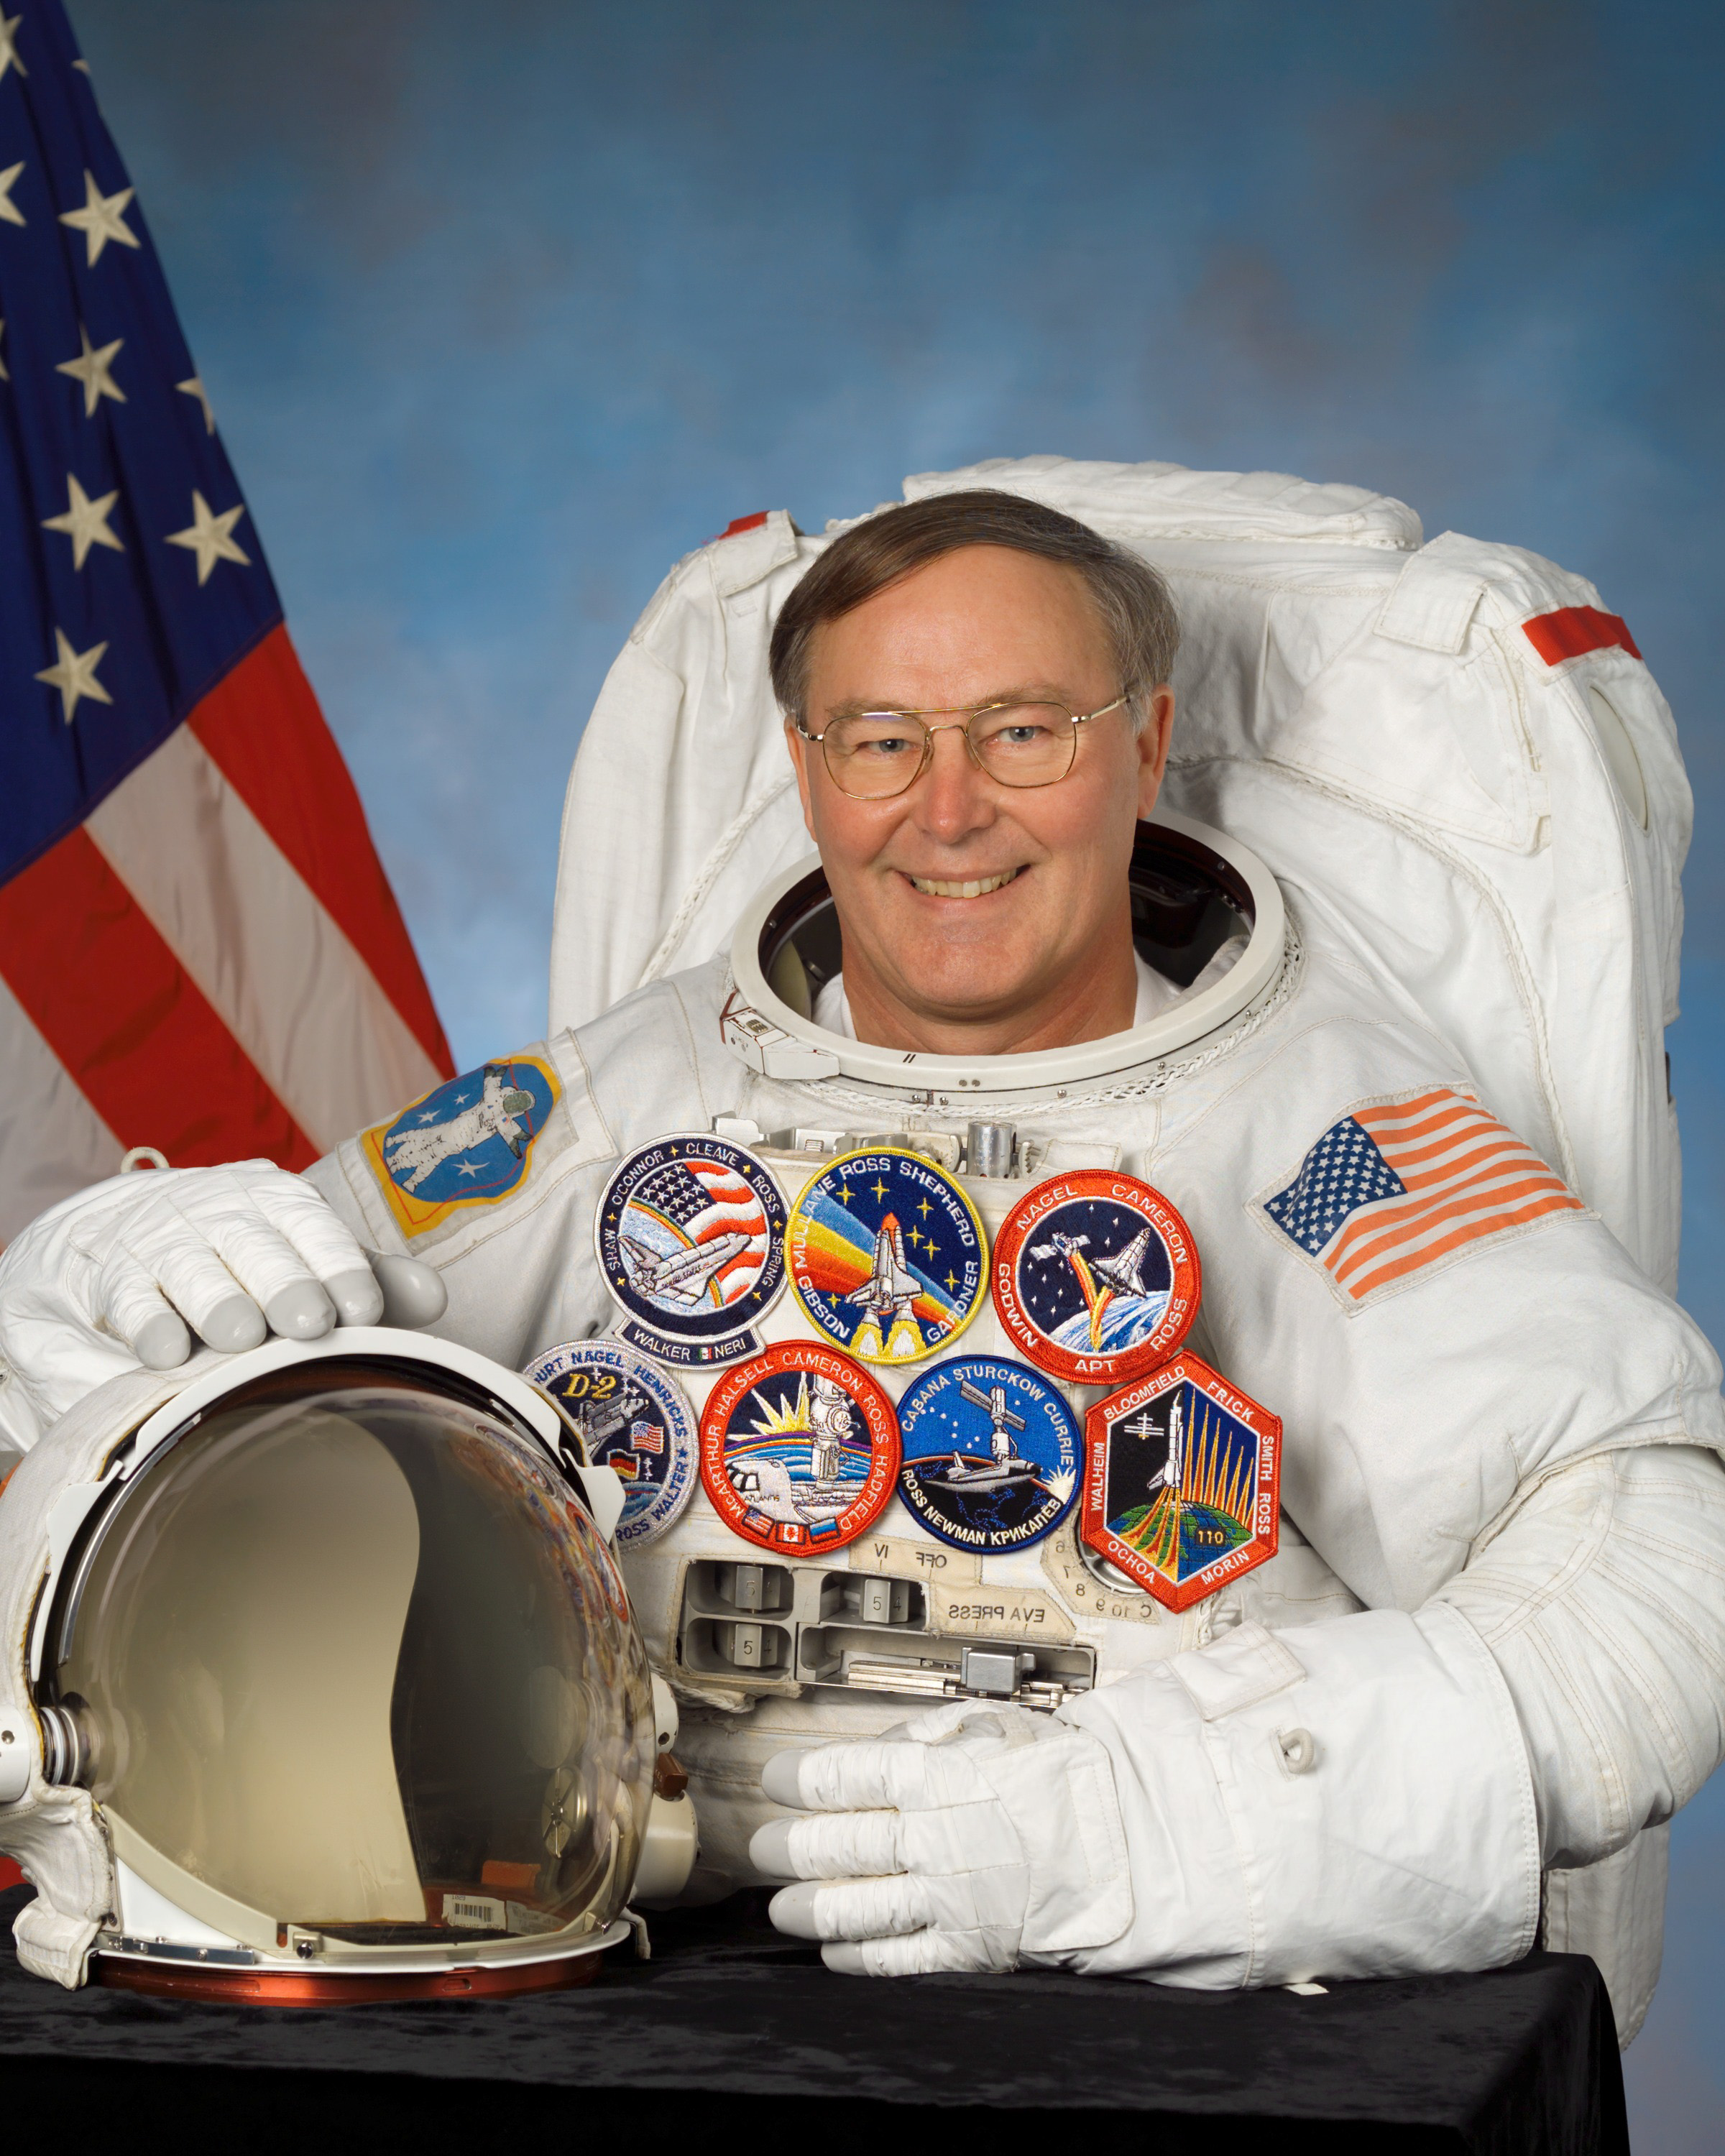 Ed Prather Art: Space Shuttle Astronaut To Be WVU Scholar-in-residence As